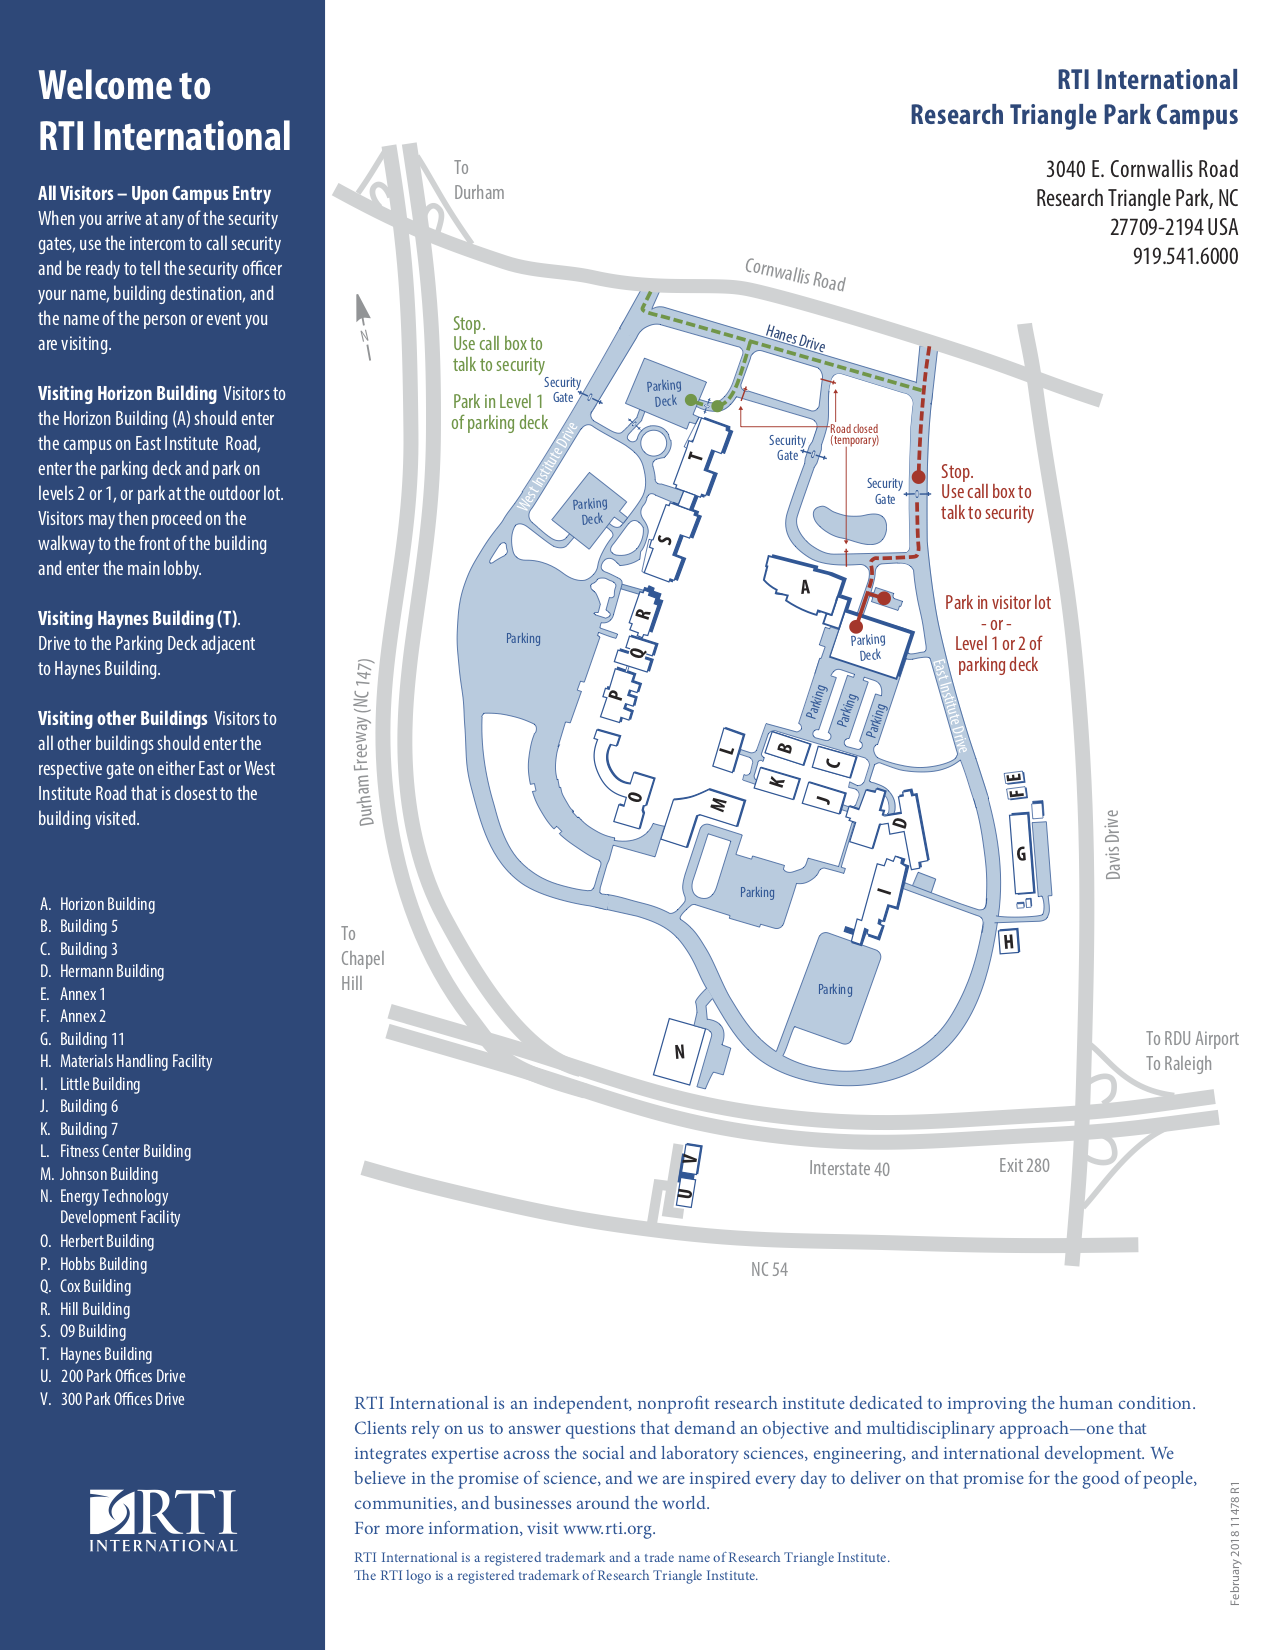 RTI International RTP Campus Map